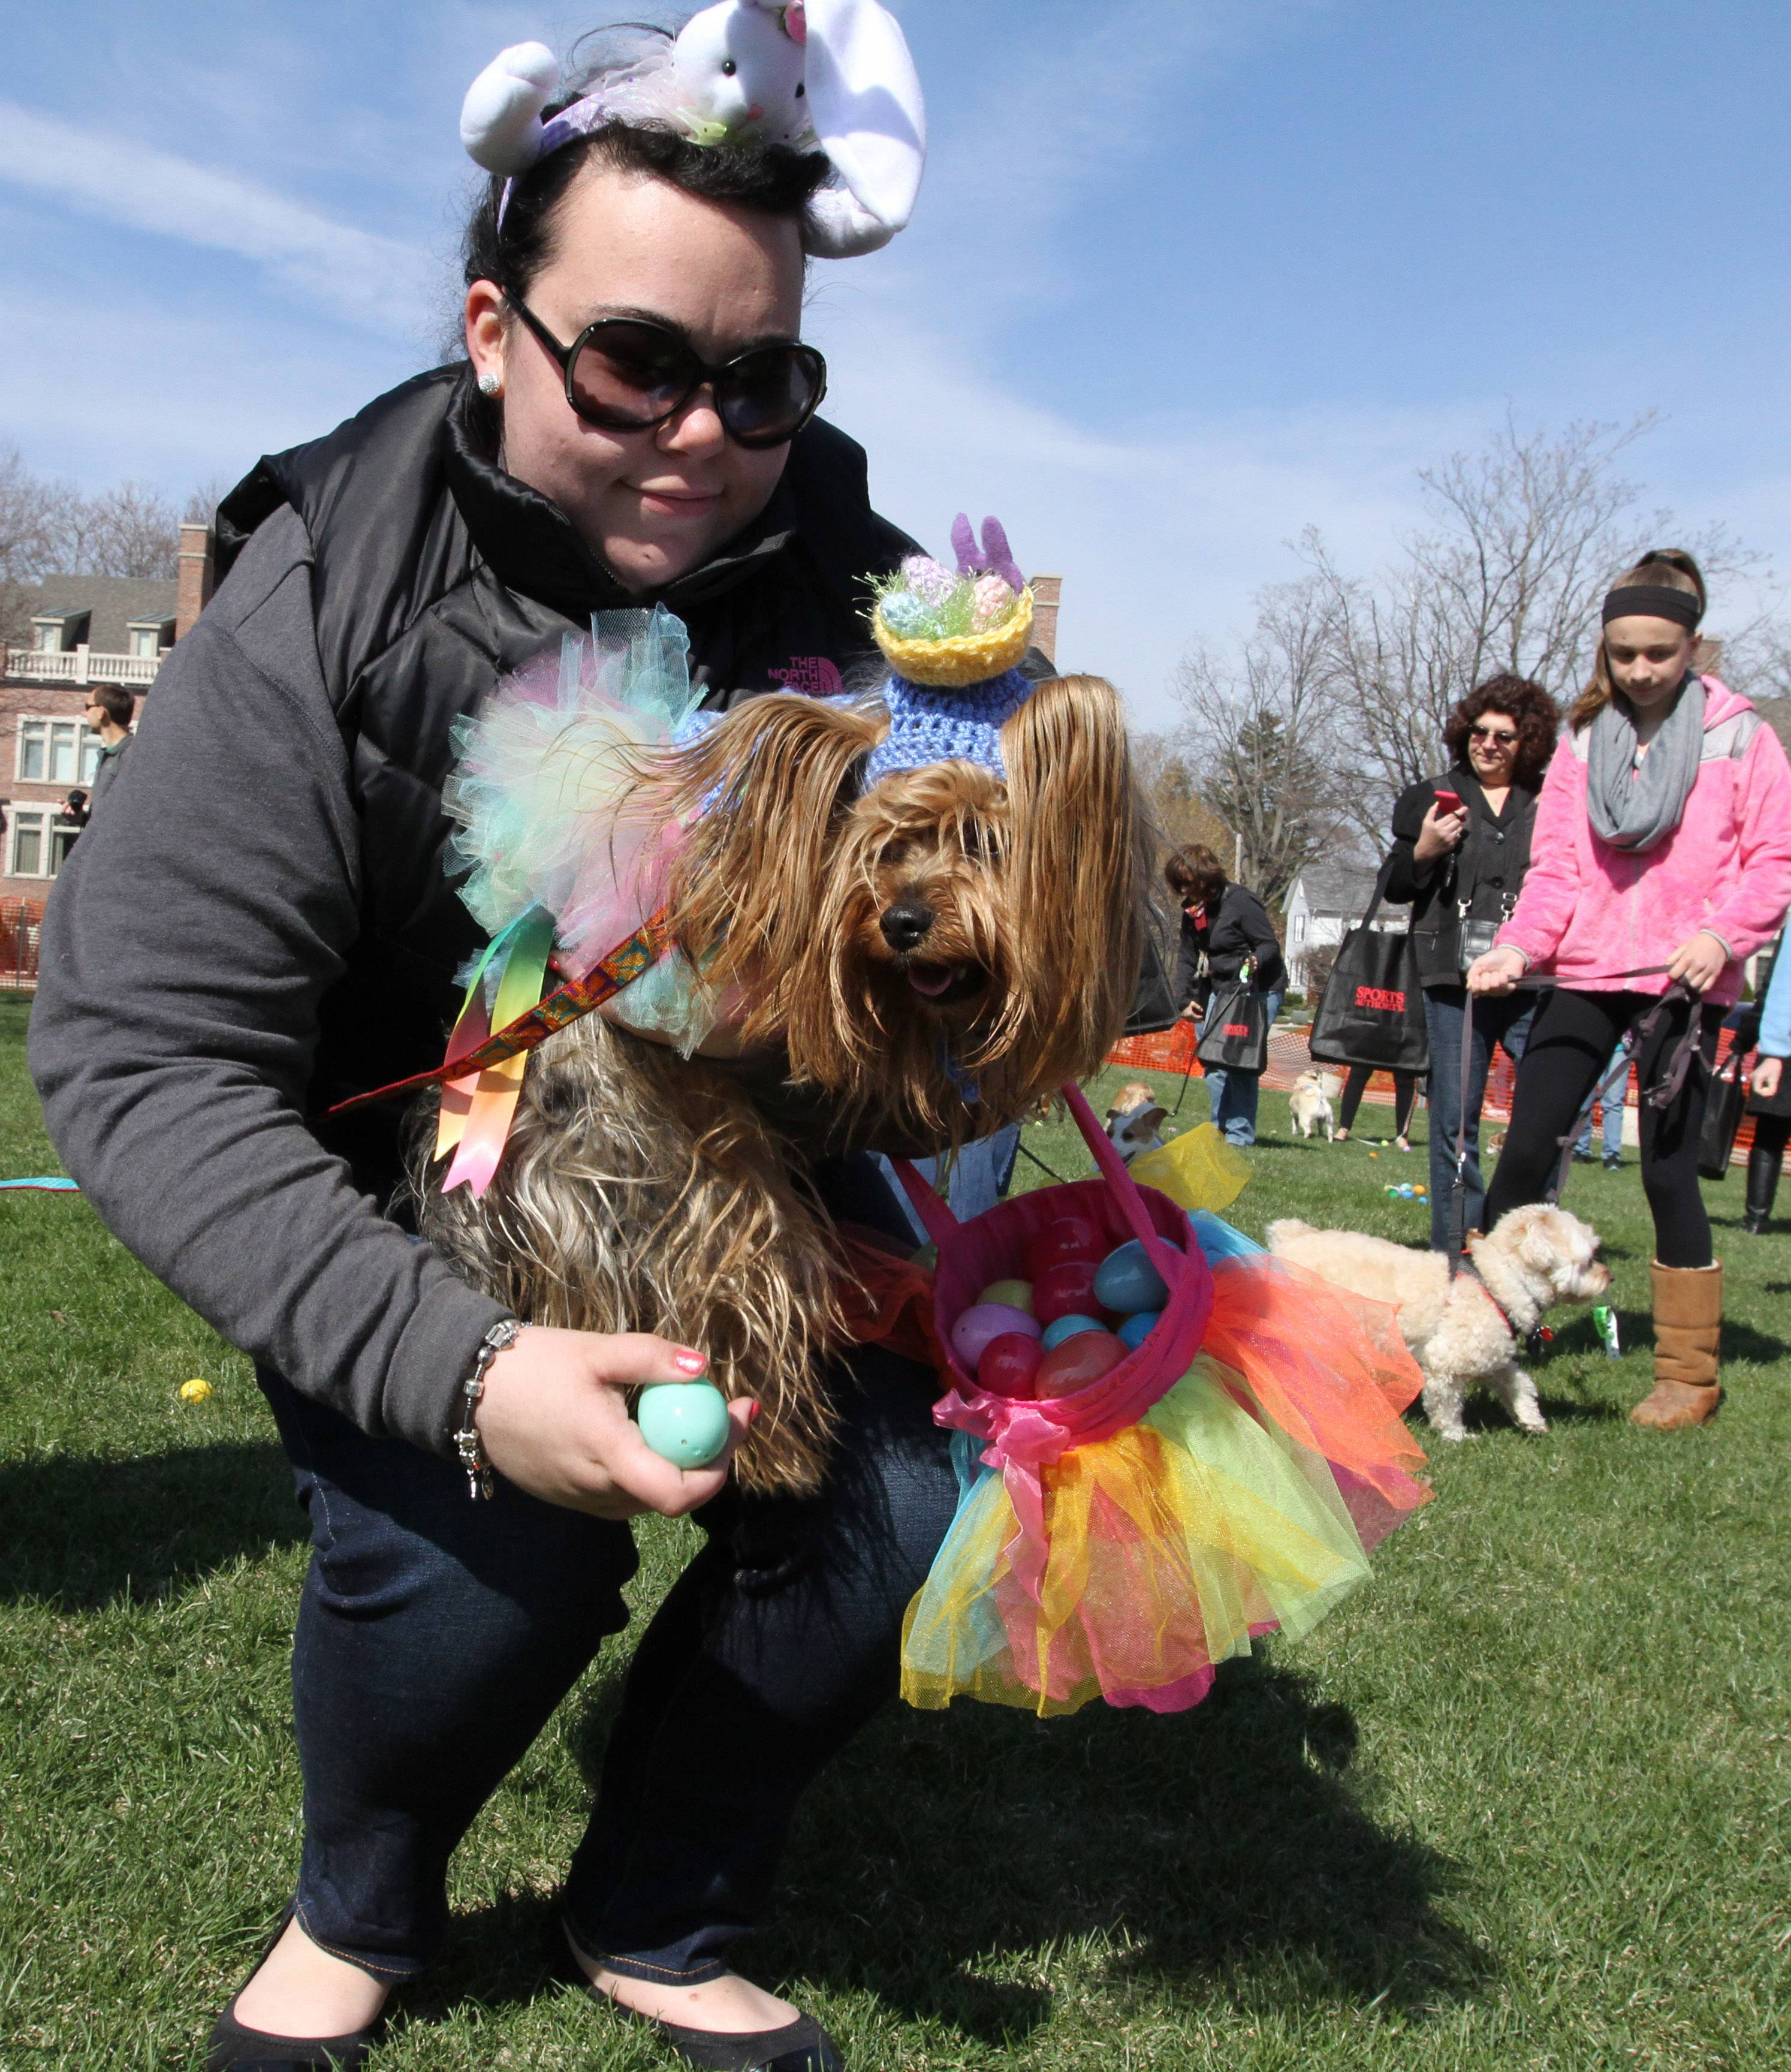 Angelica Dinzburg of Glenview picks up plastic eggs filled with dog treats with her dog, Cookie, a 3-year-old Yorkie at Palatine Park District's annual Hound Egg Hunt at Towne Square on Saturday.